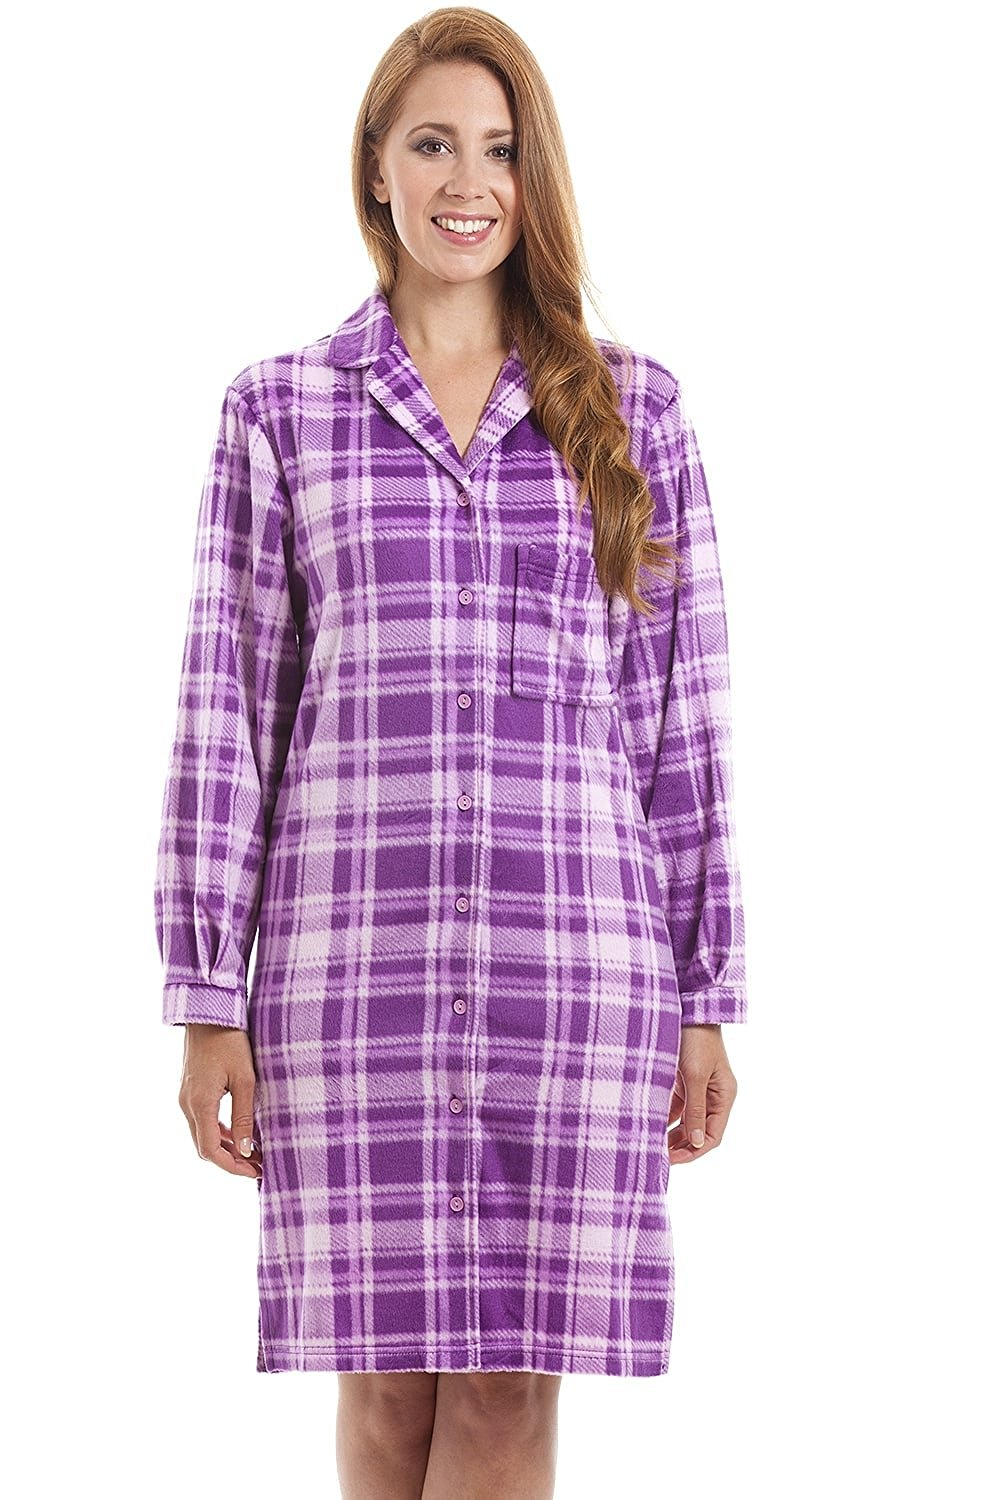 d154797287 Get Quotations · Camille Womens Ladies Lilac Checkered Long Sleeve Button  Front Wincy Nightshirt